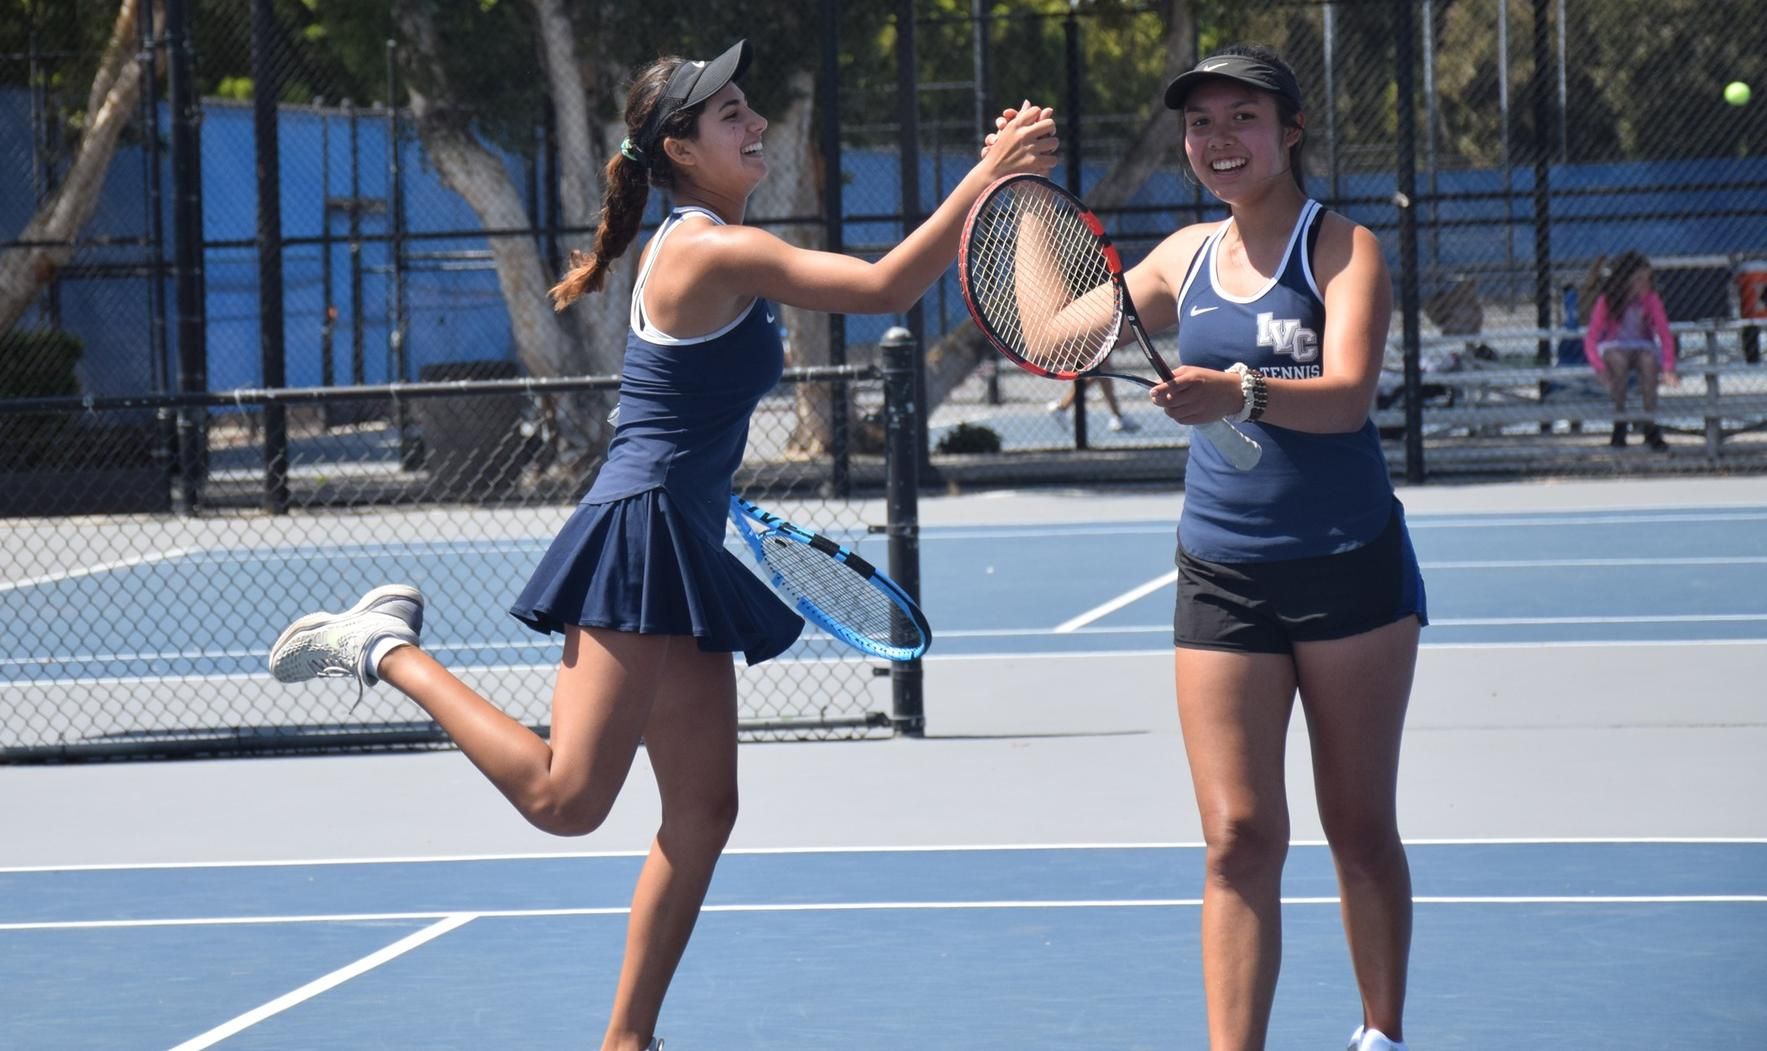 Women's tennis team beats El Camino in first round of playoffs